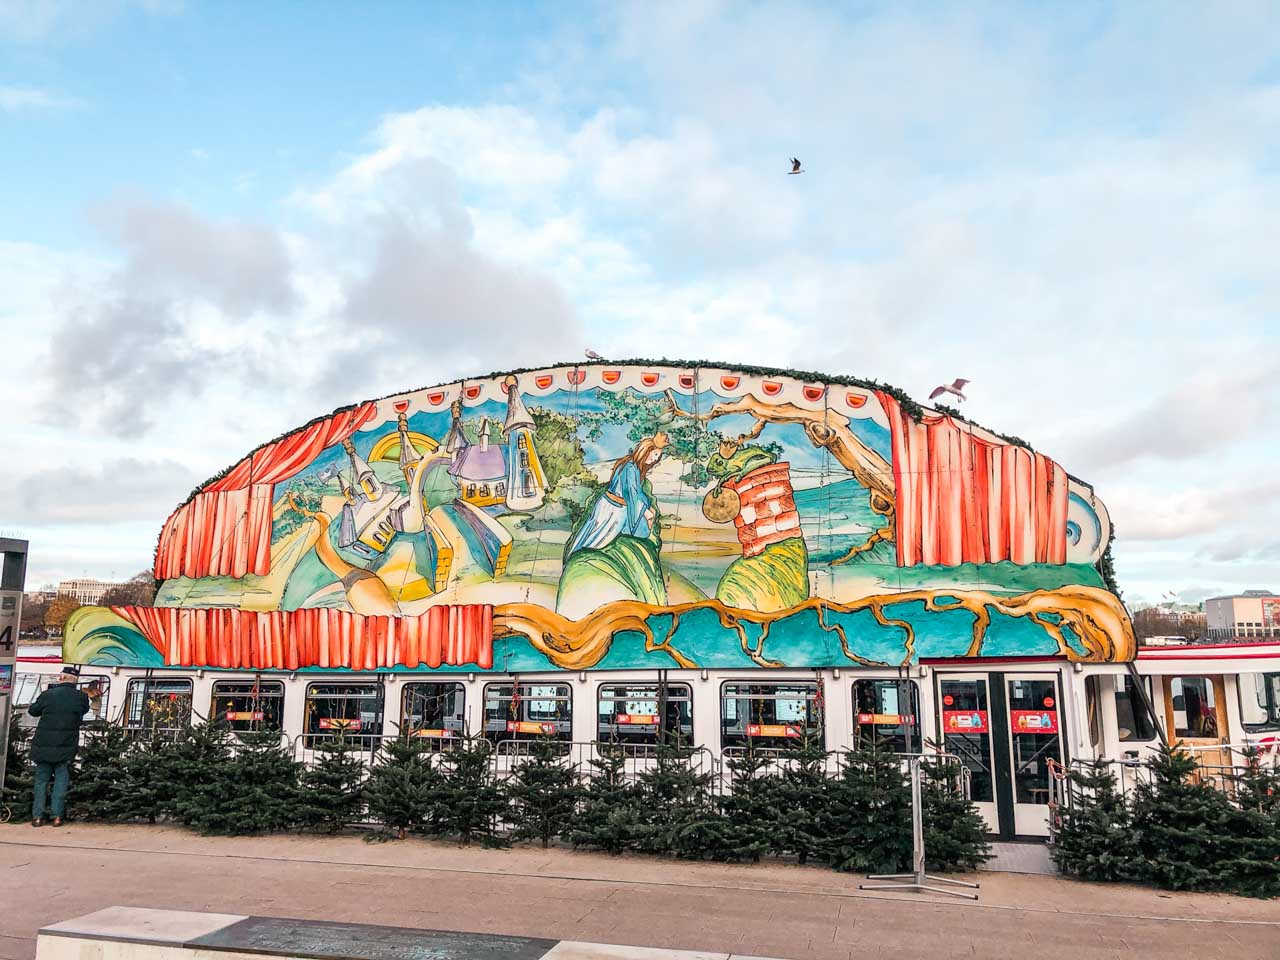 A decorated Fairytale Ship located on the Jungfernstieg Alster jetty in Hamburg